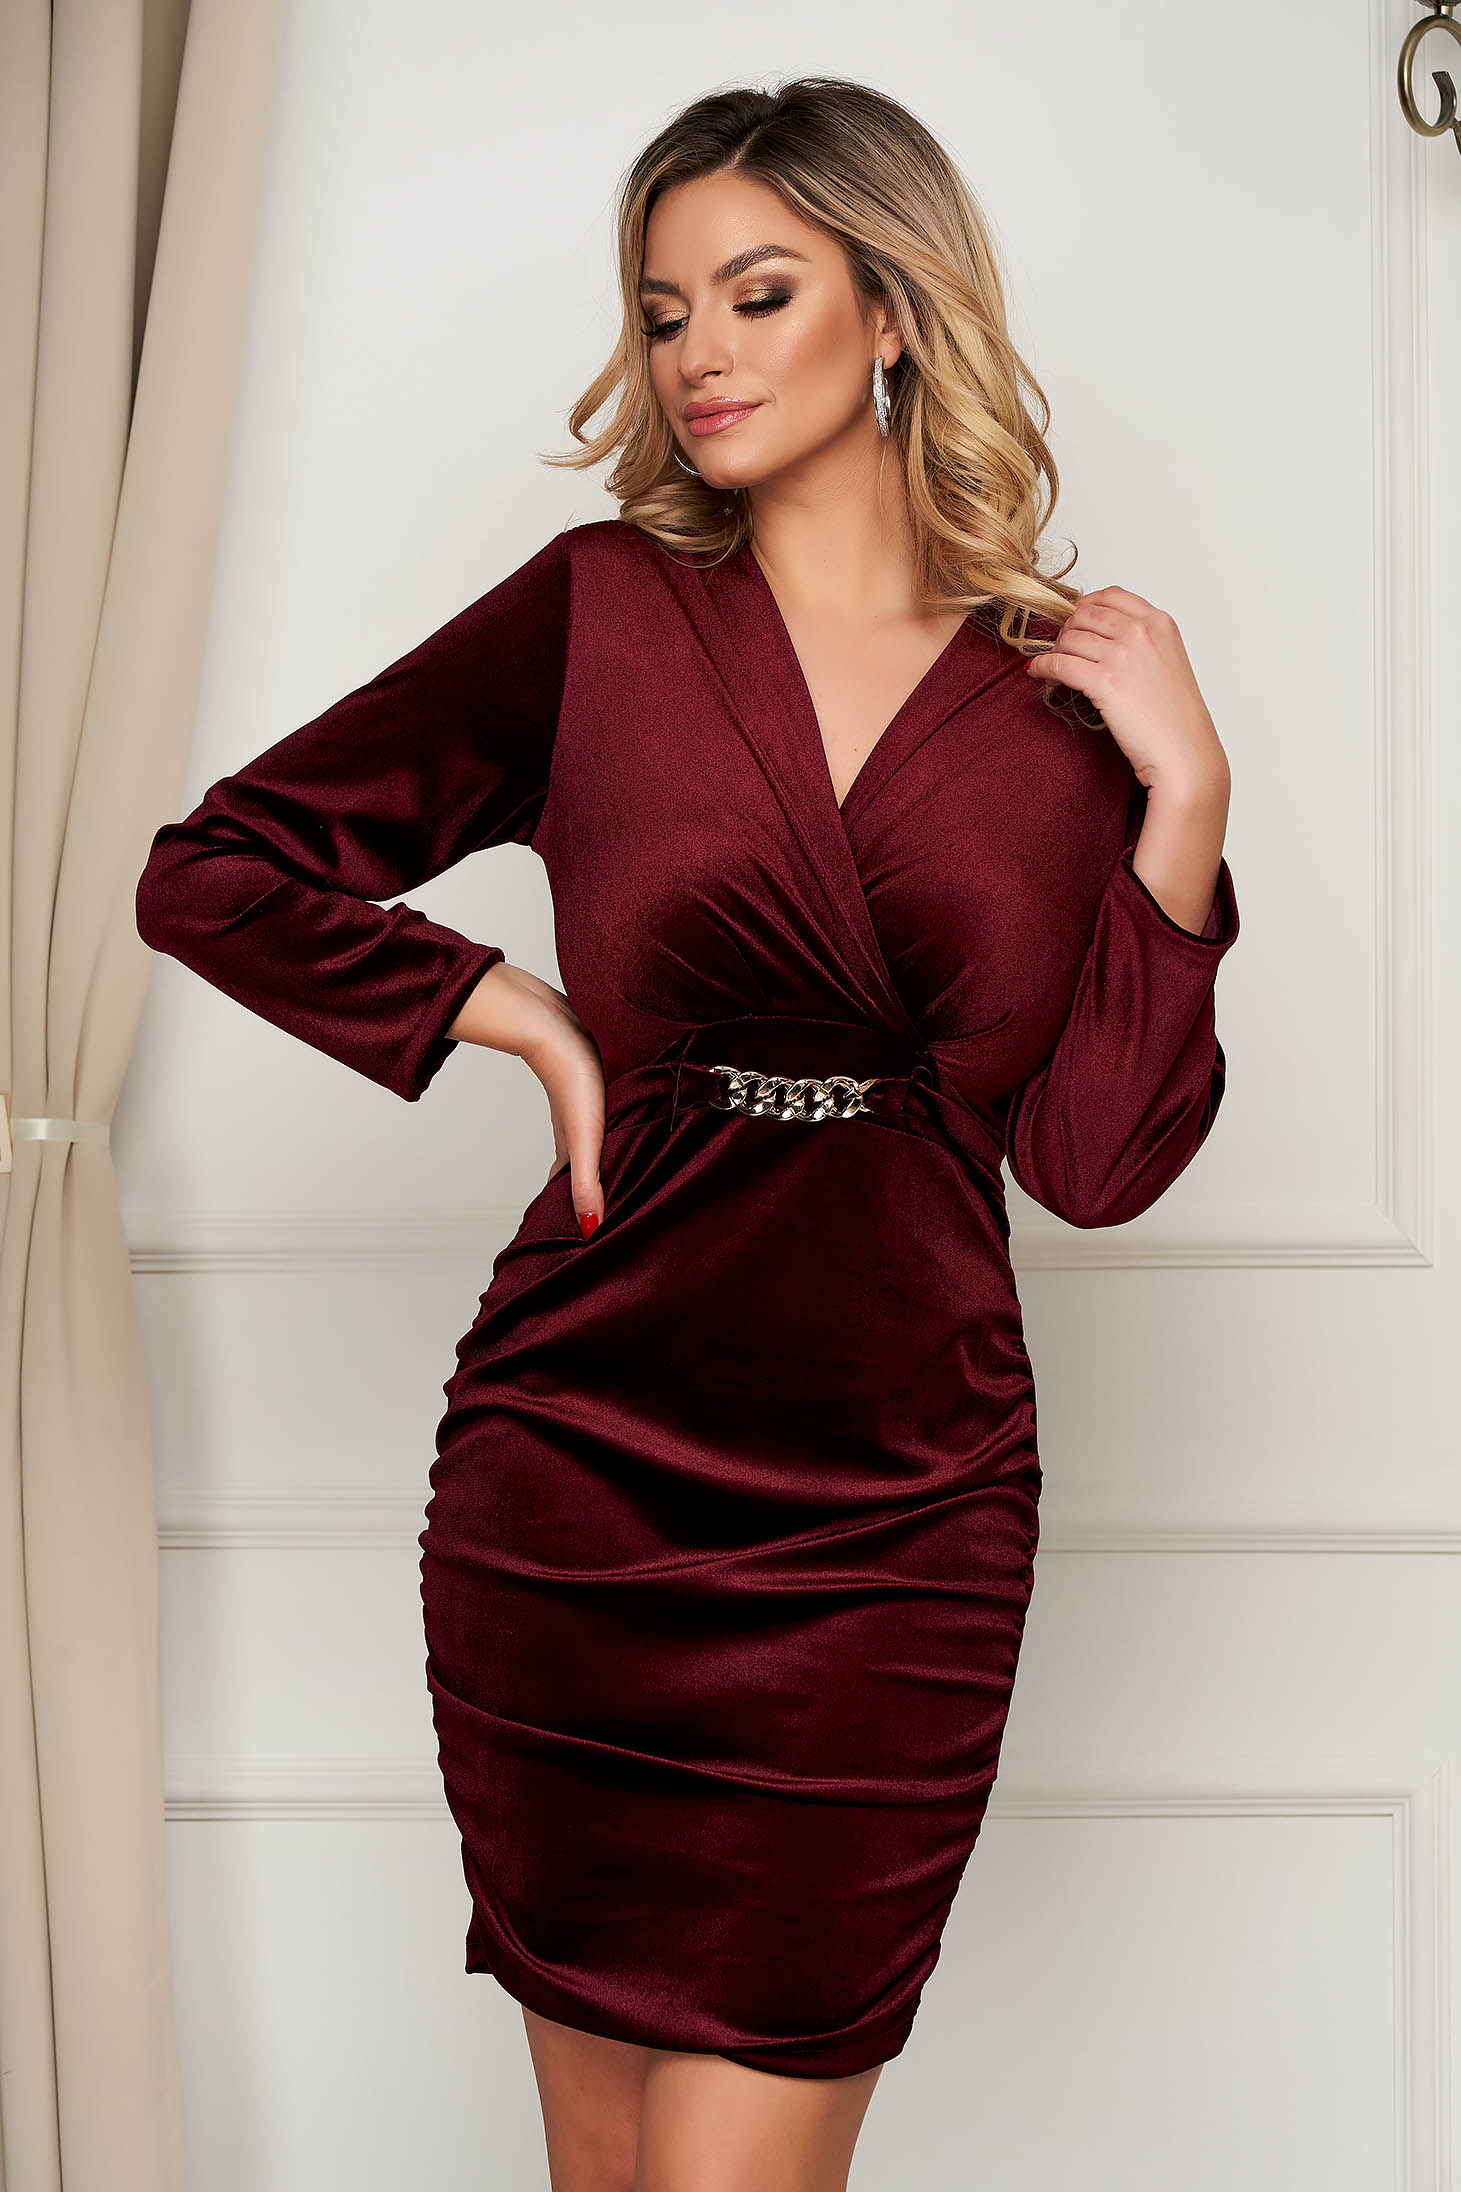 Burgundy dress velvet occasional wrap over front metallic chain accessory